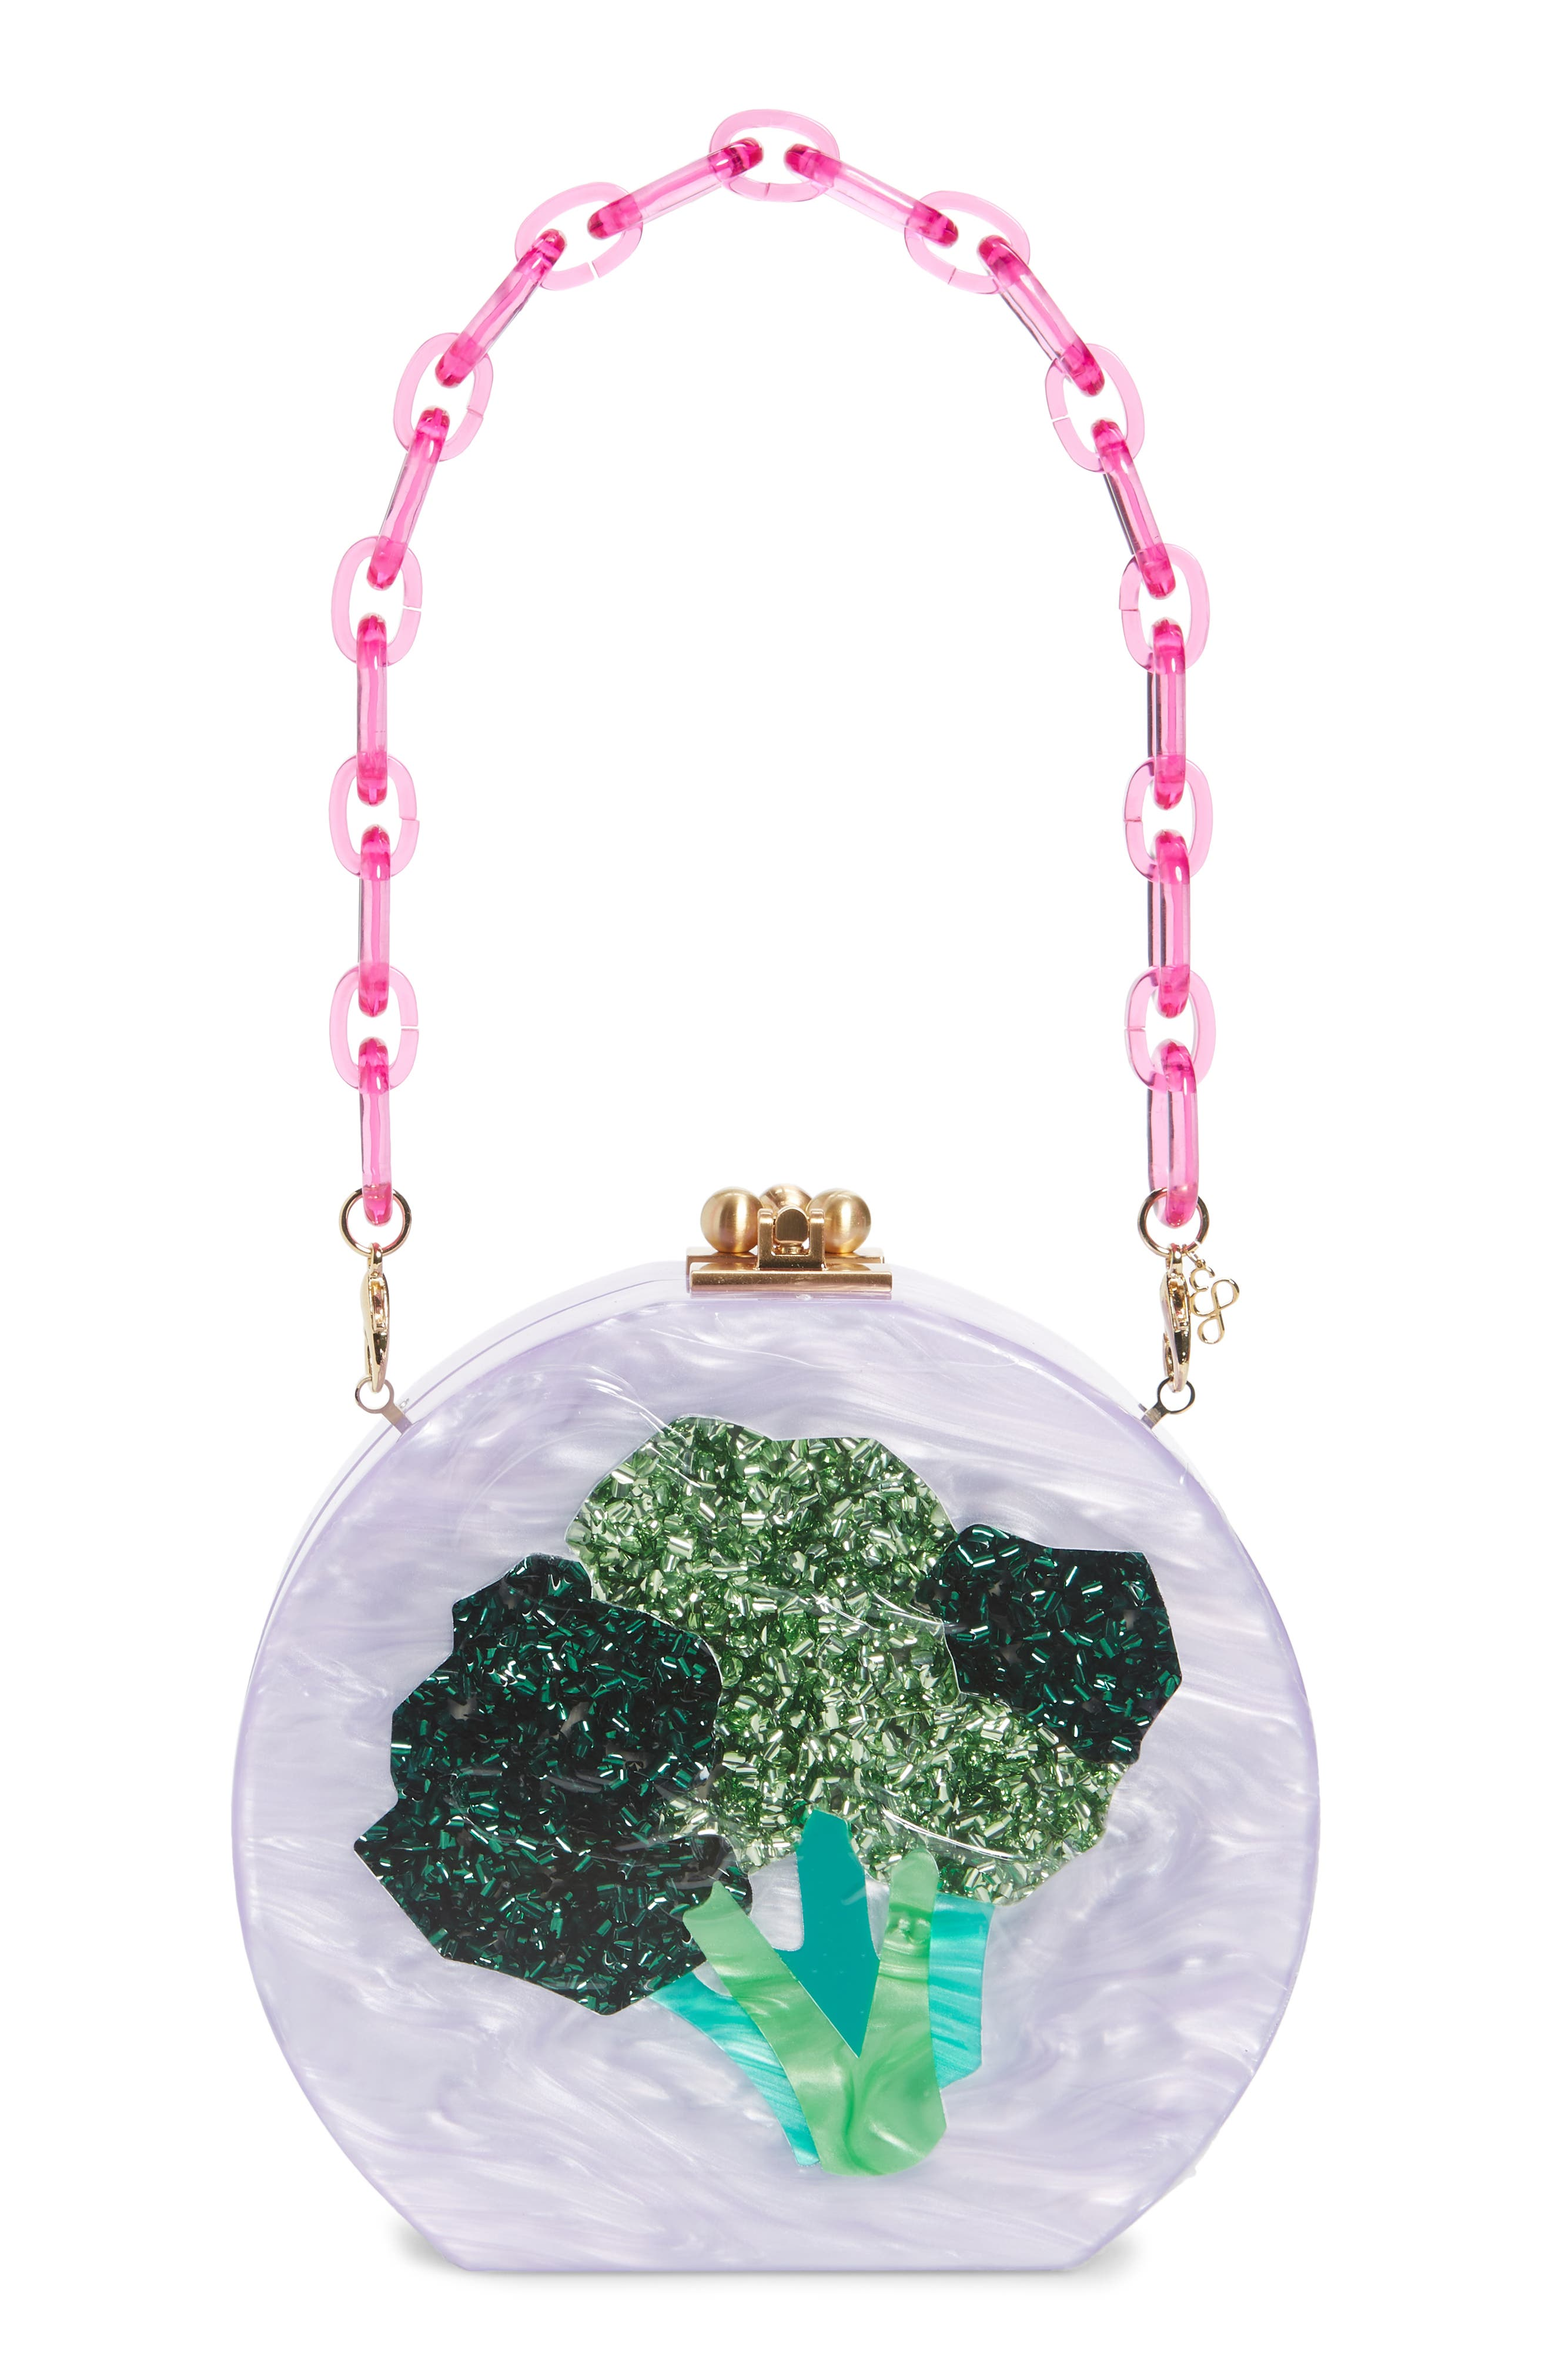 Edie Parker Broccoli Acrylic Bag in Lilac at Nordstrom